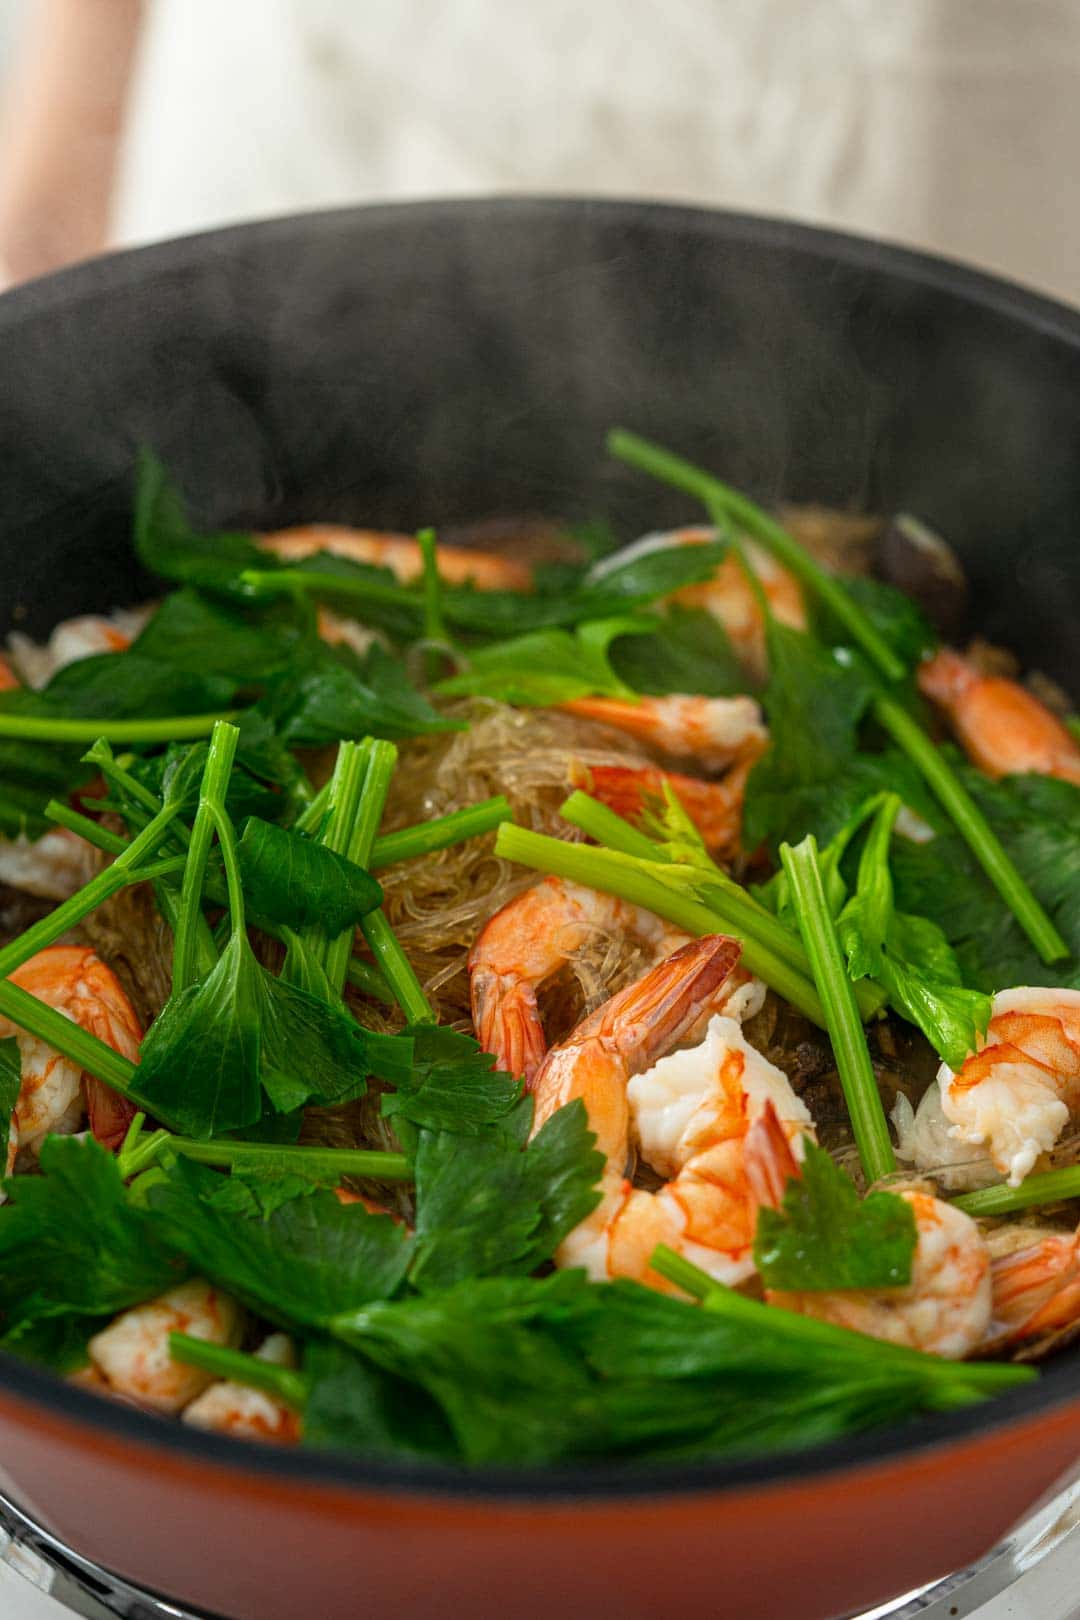 Goong ob woonsen being cooked in a pan